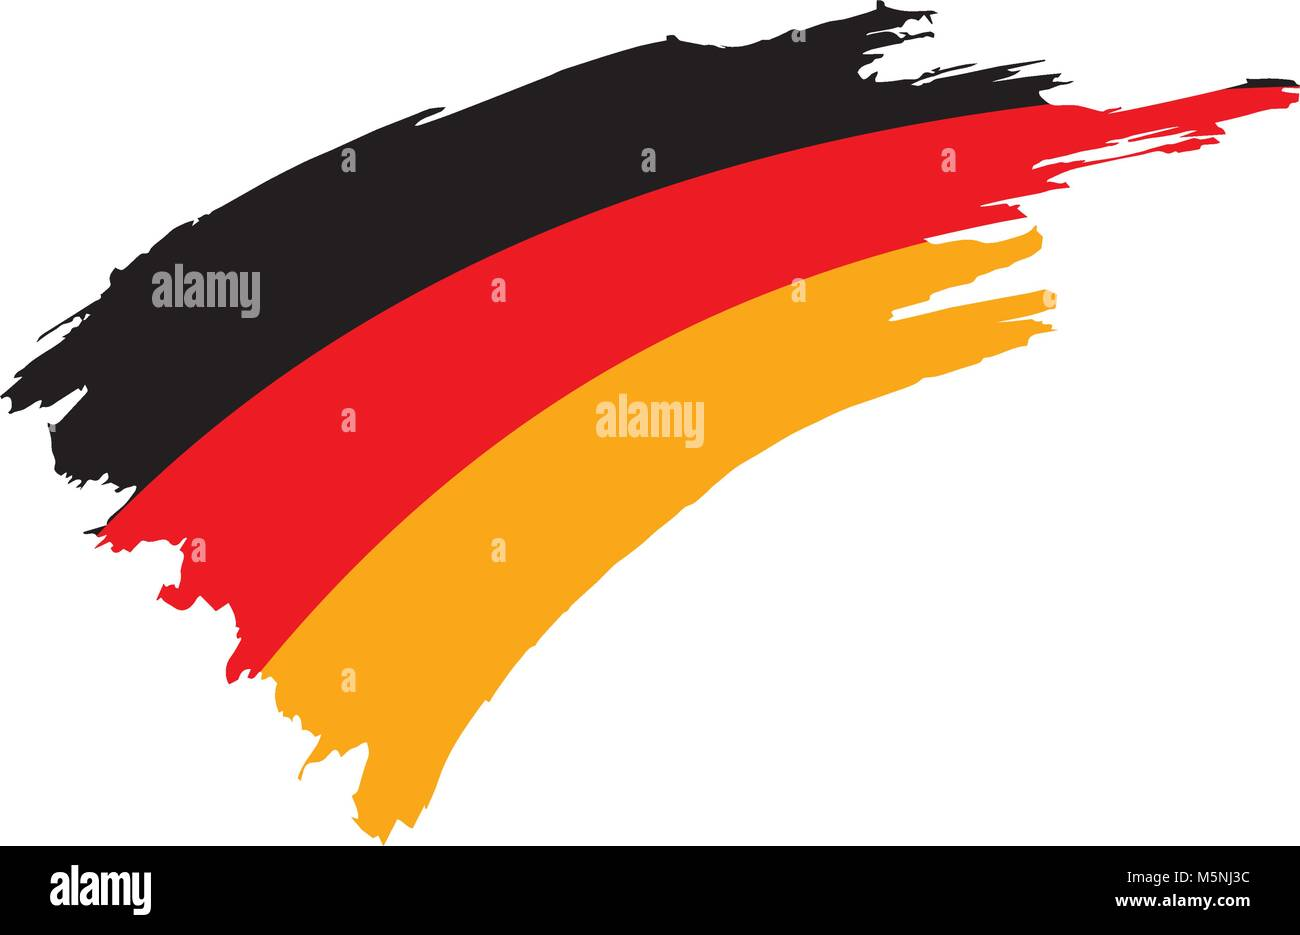 Germany flag, vector illustration - Stock Image